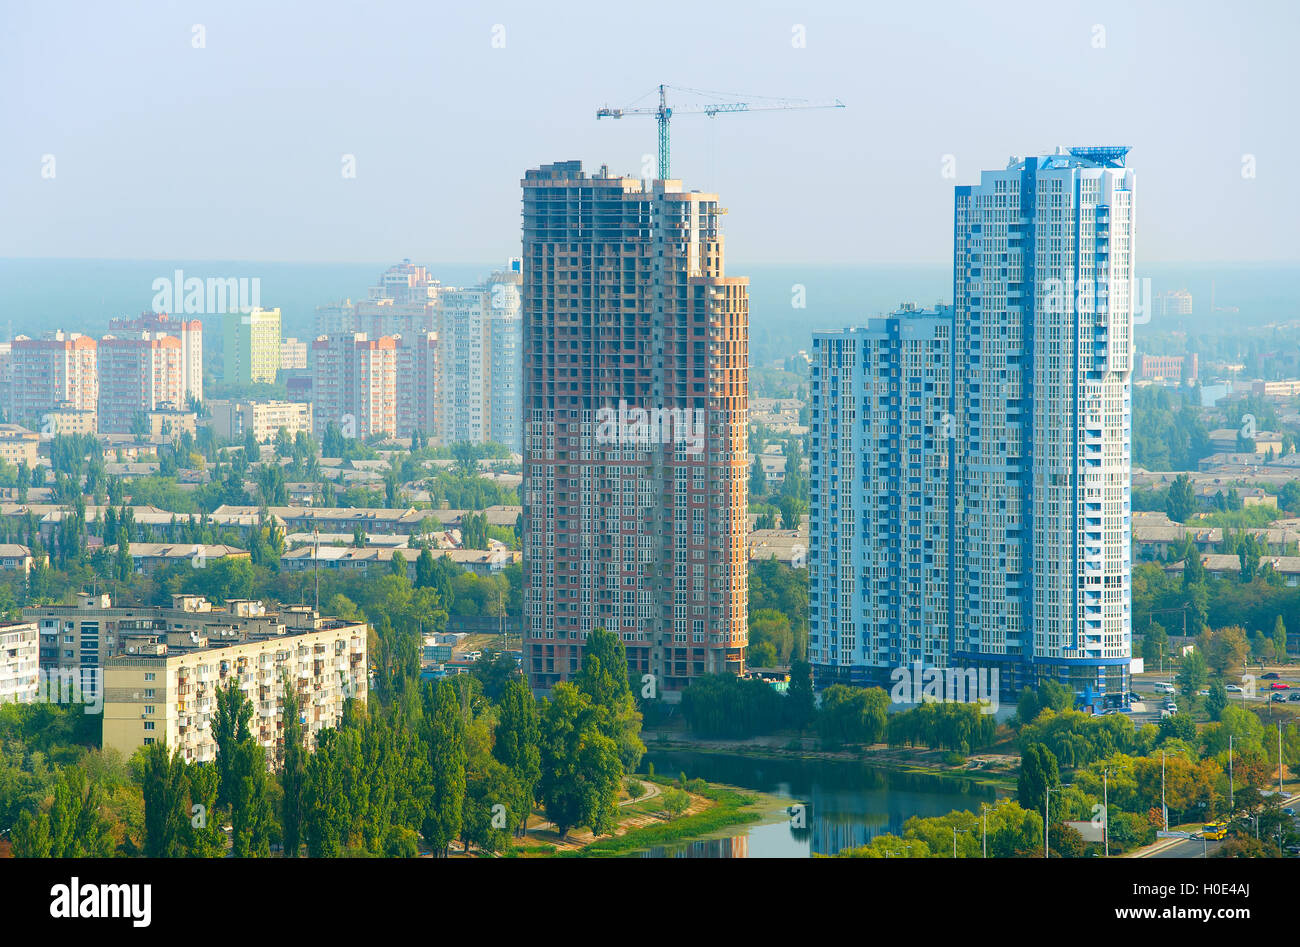 Construction site of modern apartment building in the morning light - Stock Image